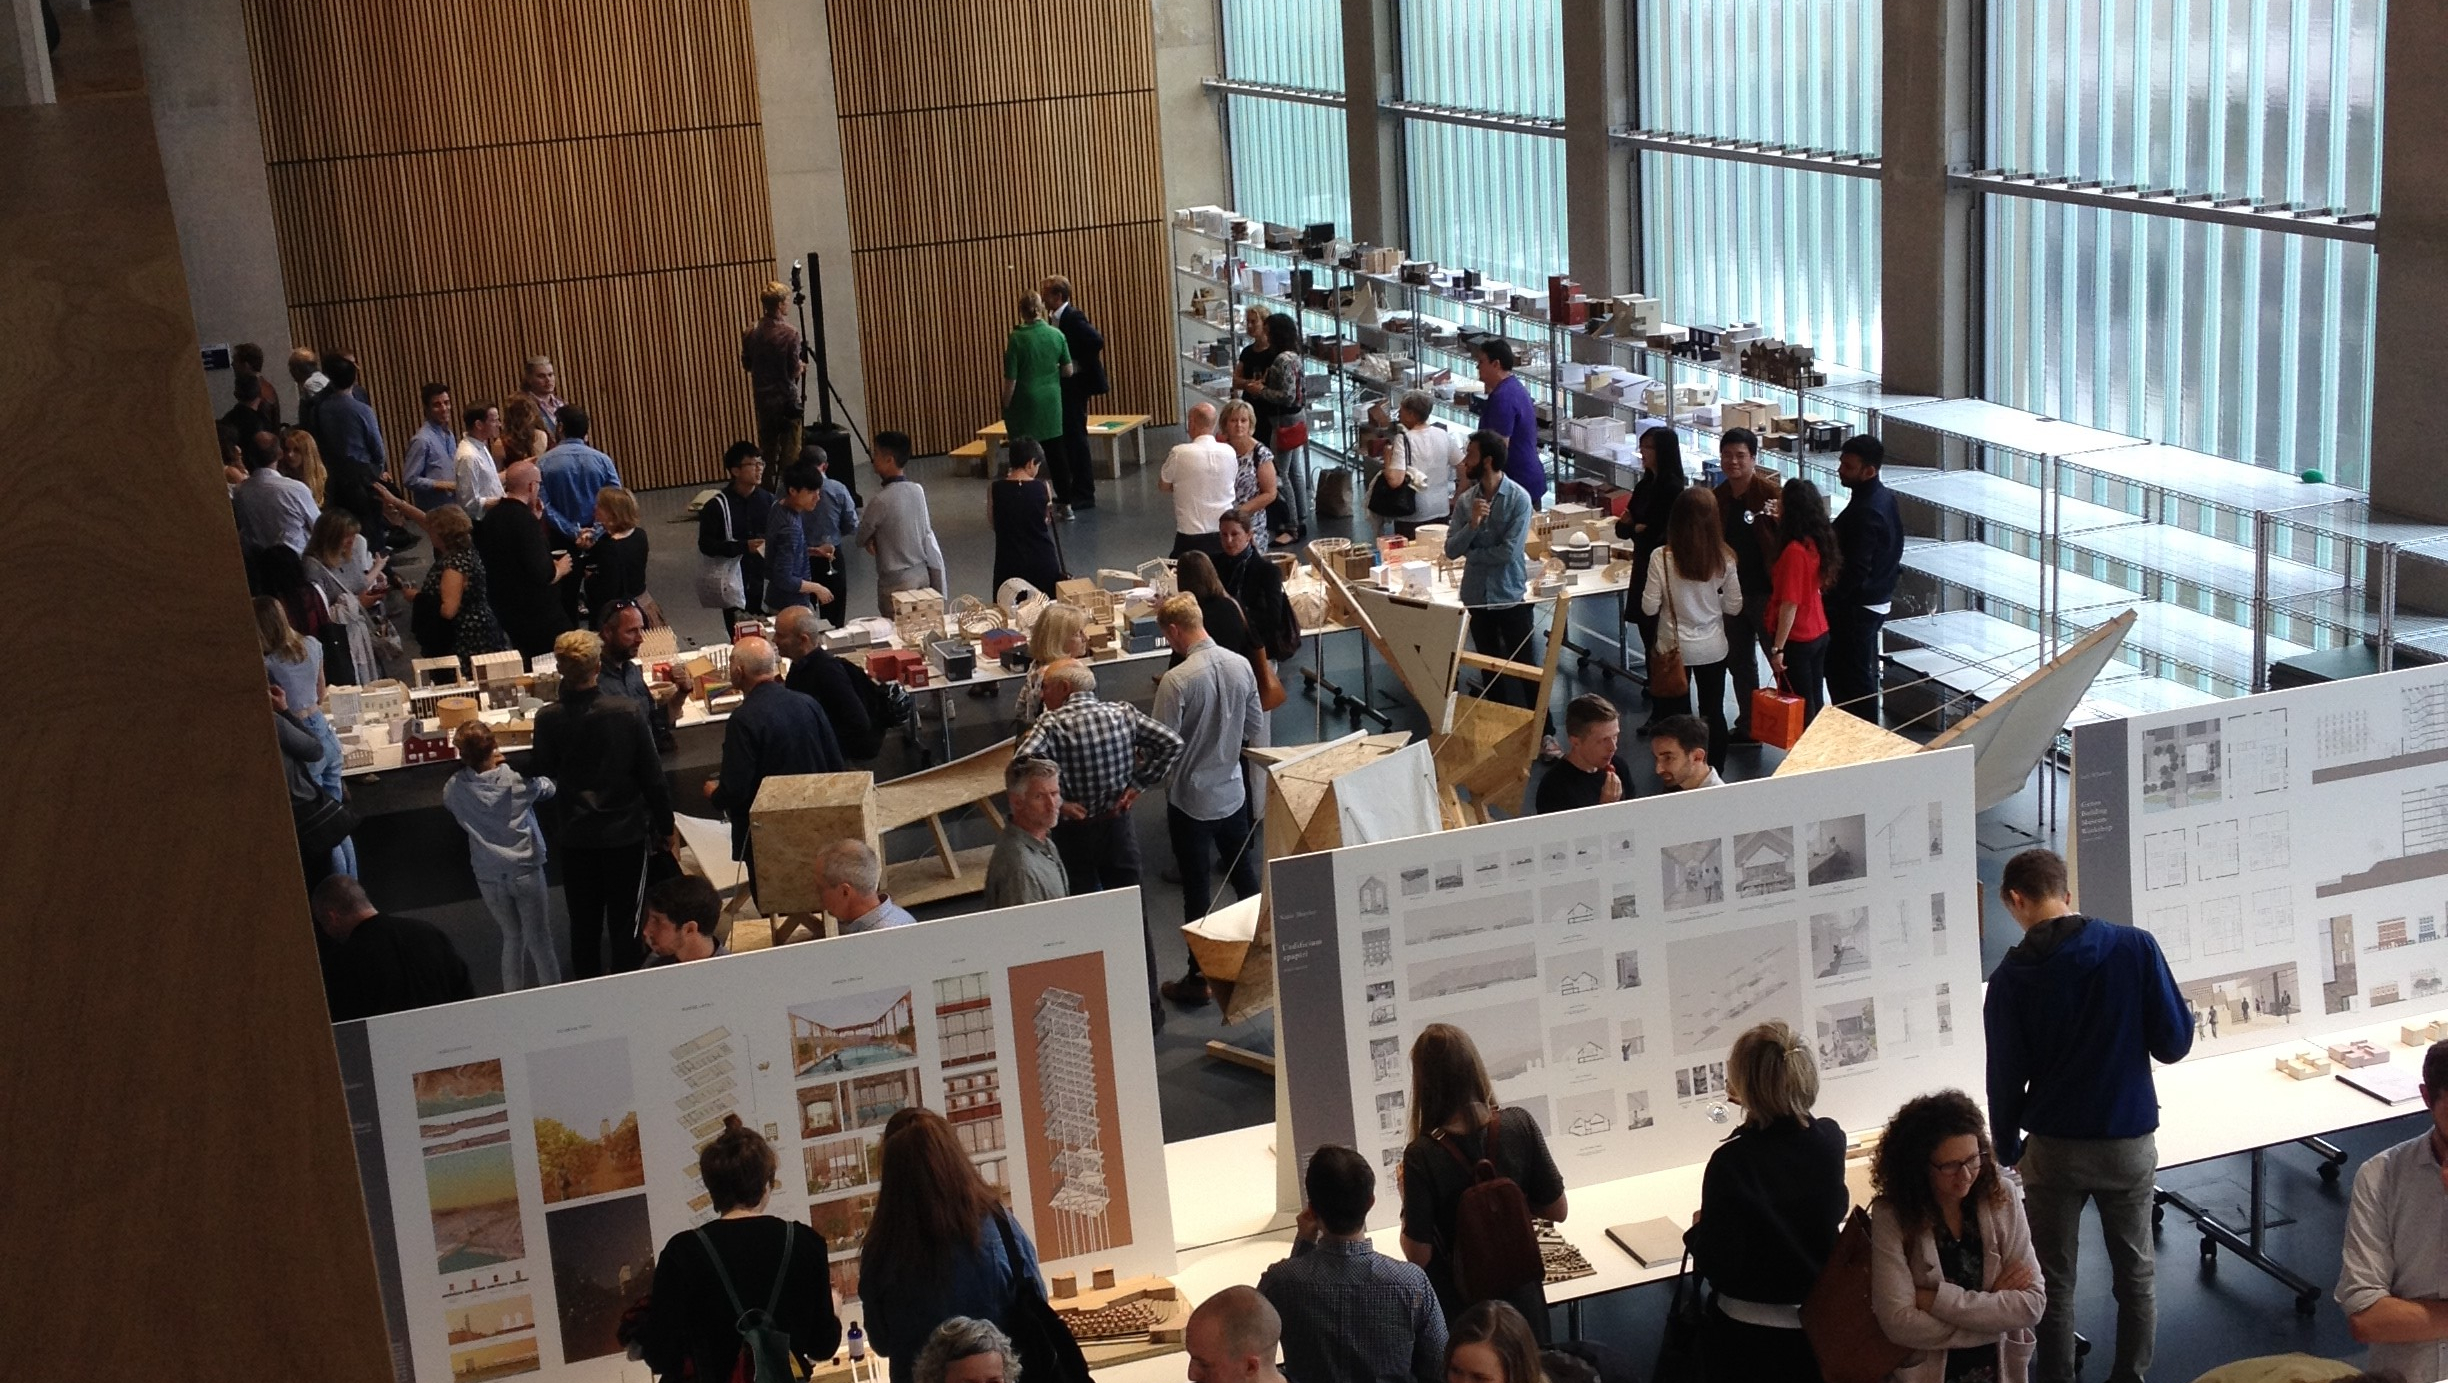 Architecture exhibition at in 4 East South.